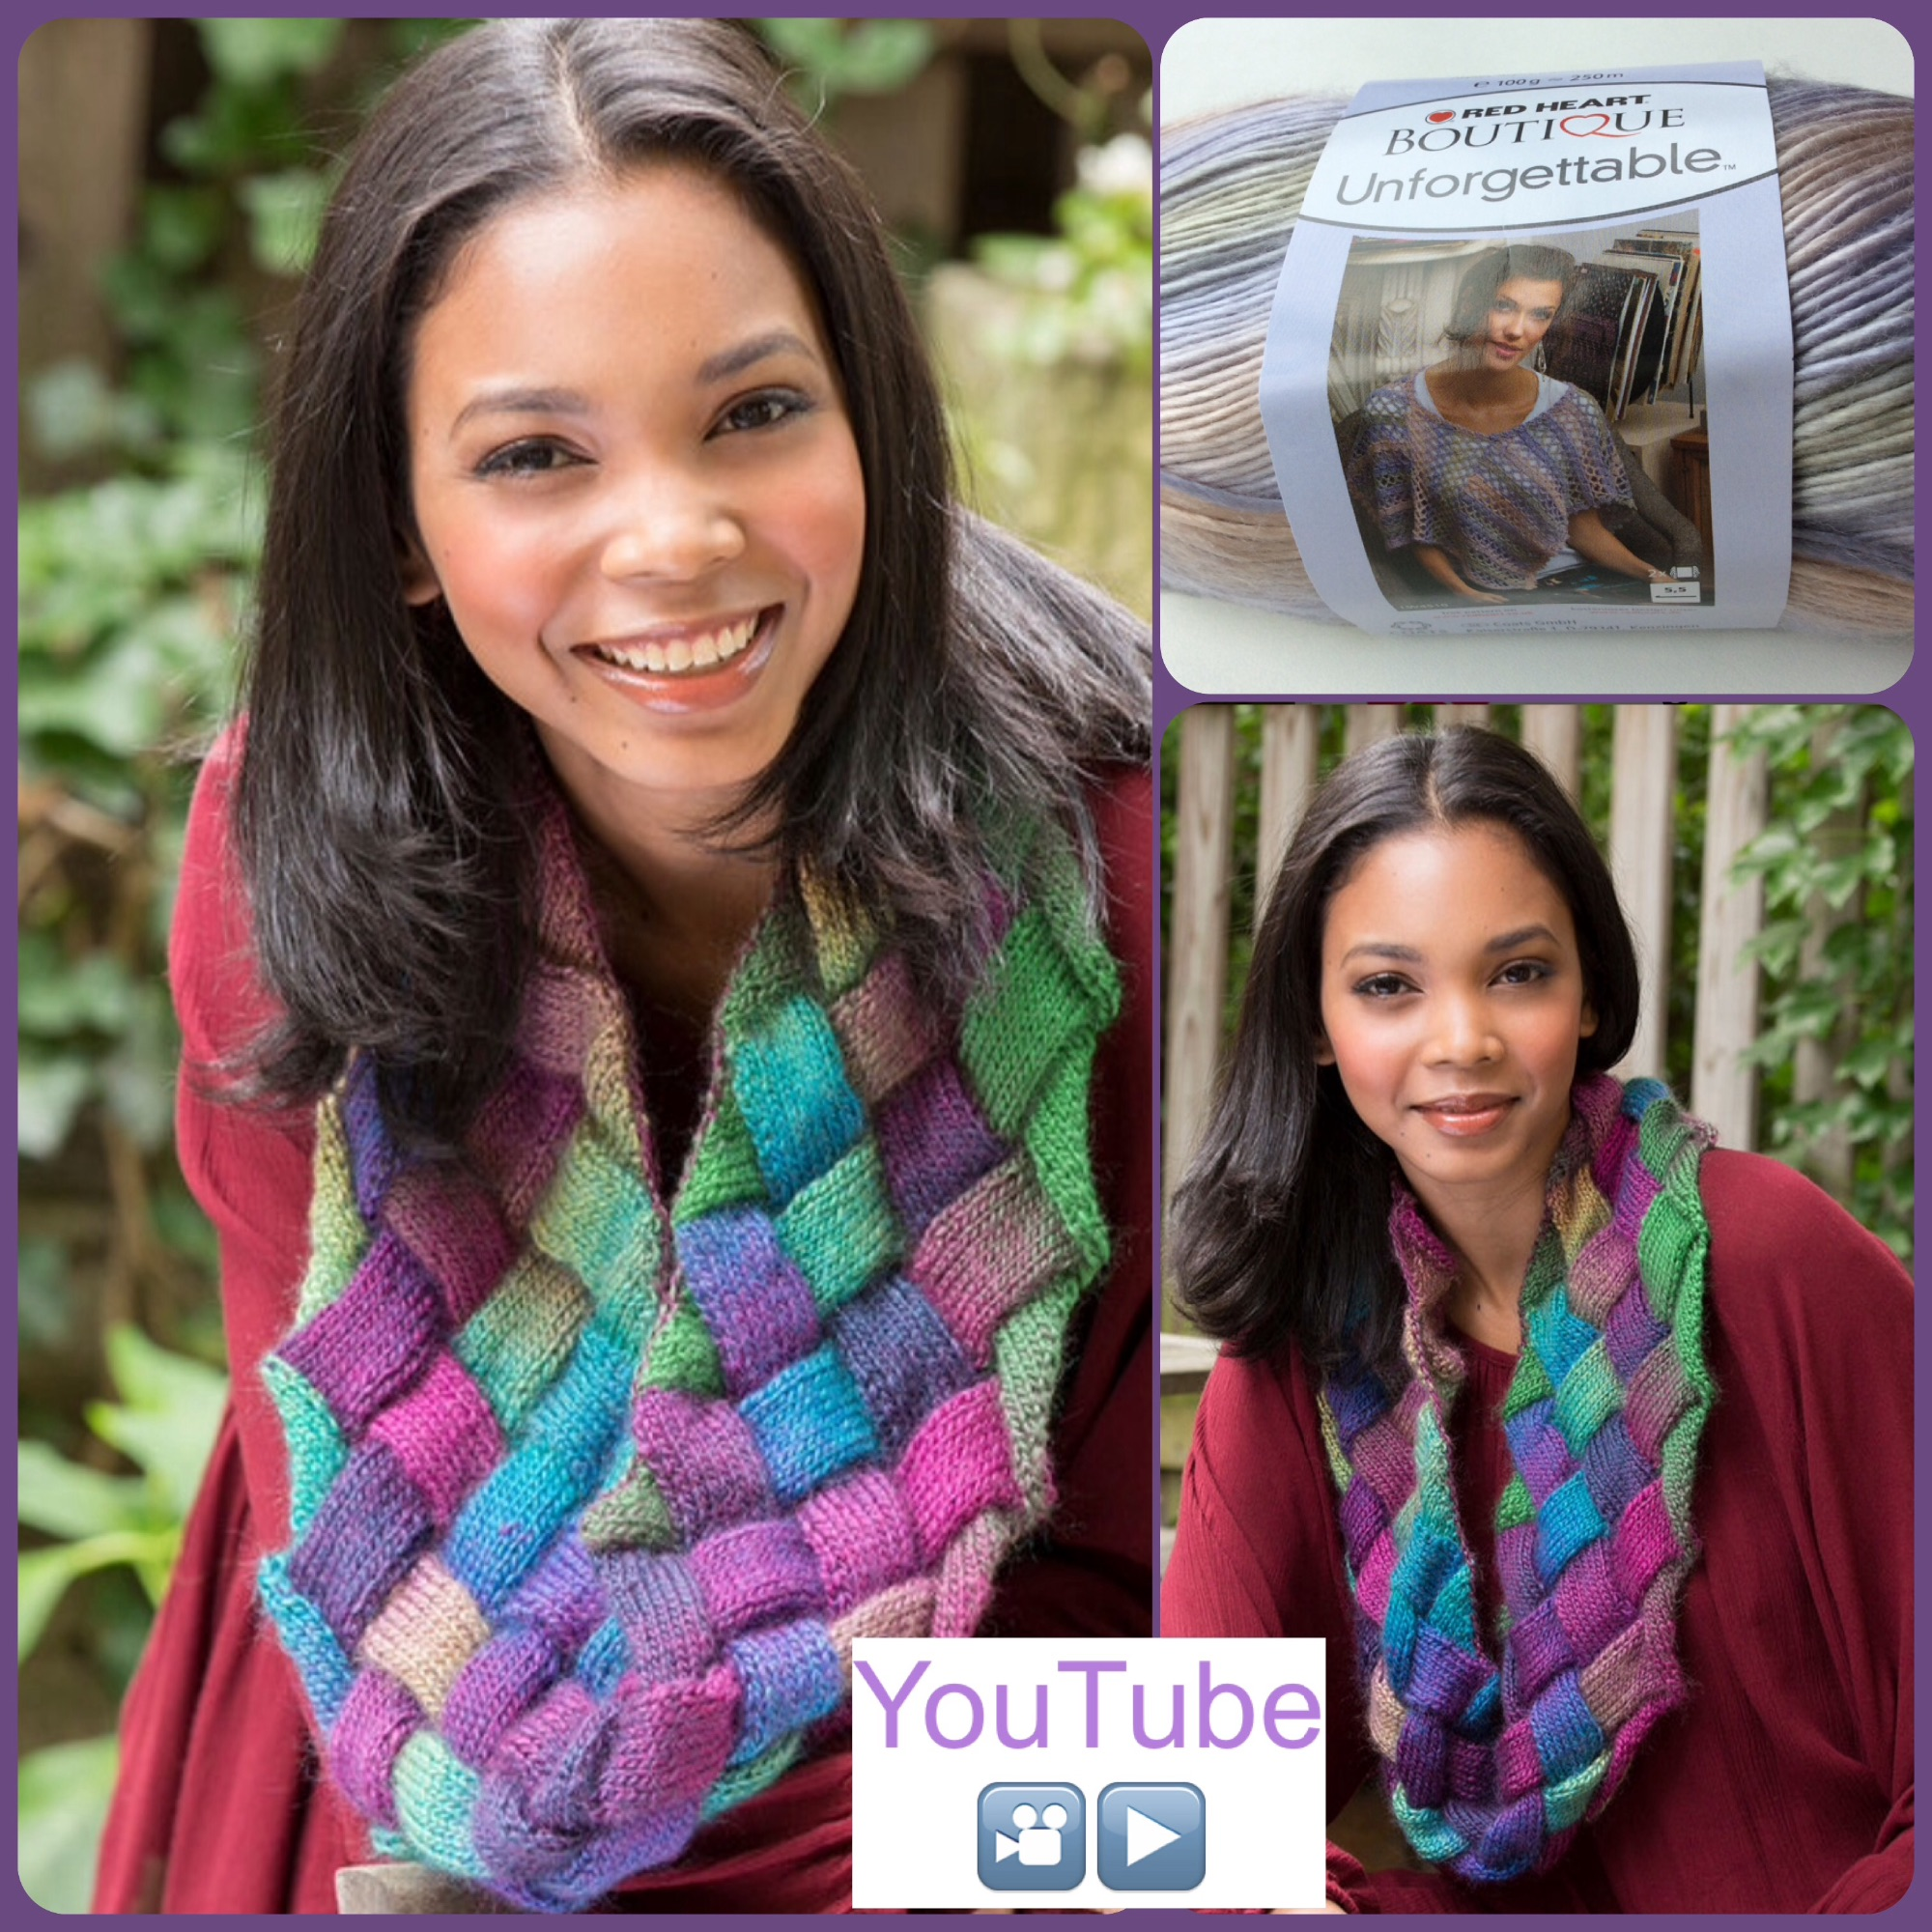 Red heart boutique unforgettable Entrelac cowl free pattern